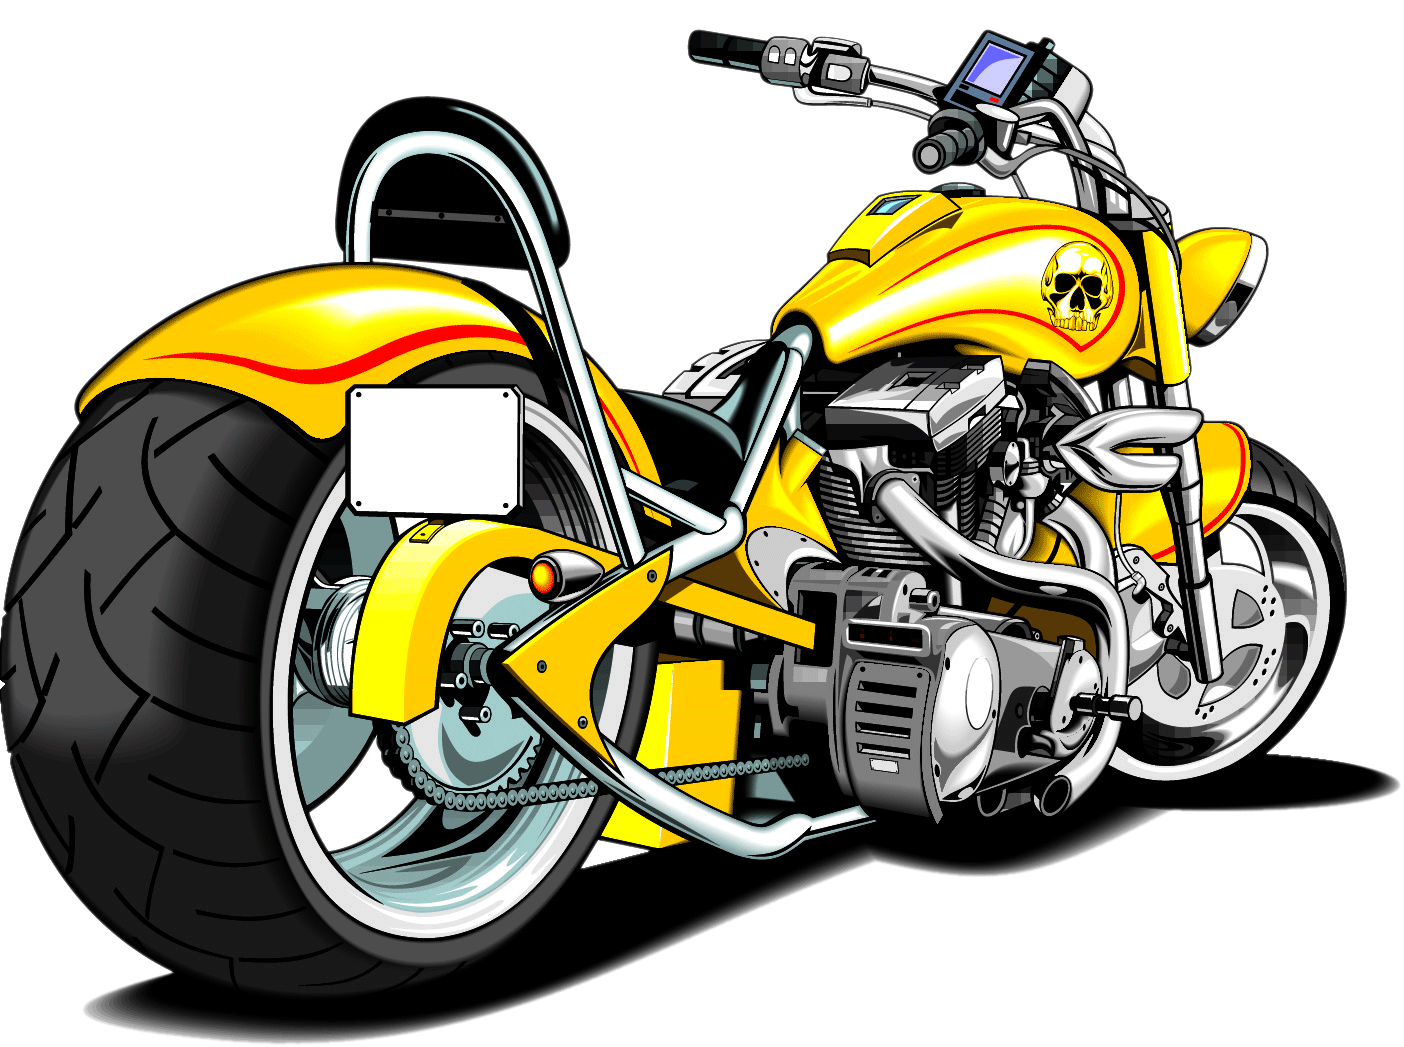 image royalty free download Harley davidson clipart project. Motorcycle silhouette at getdrawings.